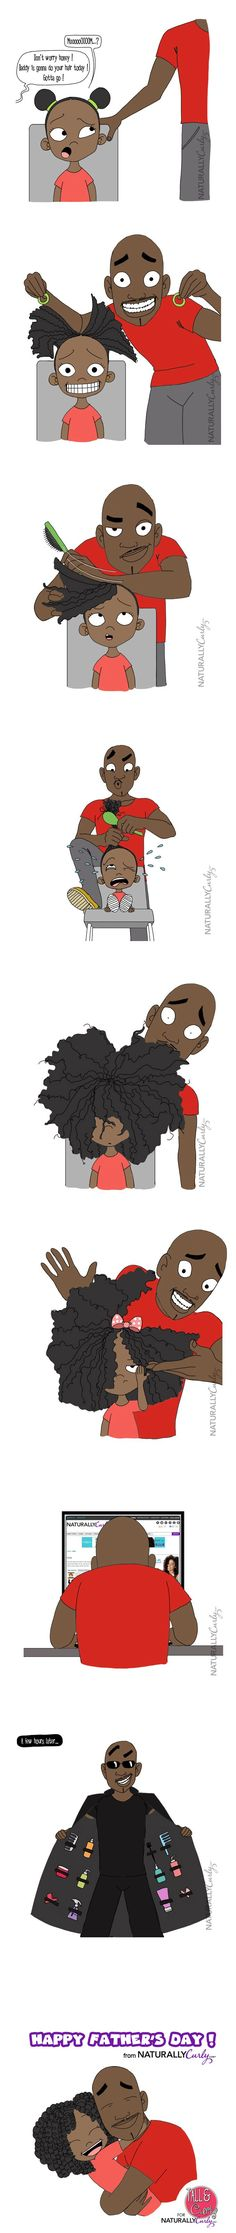 Go Natural---- Black father loving his daughter and showing her what men will appreciate and admire--REAL HAIR--allowing you to stay connected with the signals from the Cosmos--Our hair, body and organs are fed messages from the Sun, Moon, Planets and Starlights--Esoteric teachings....!!!